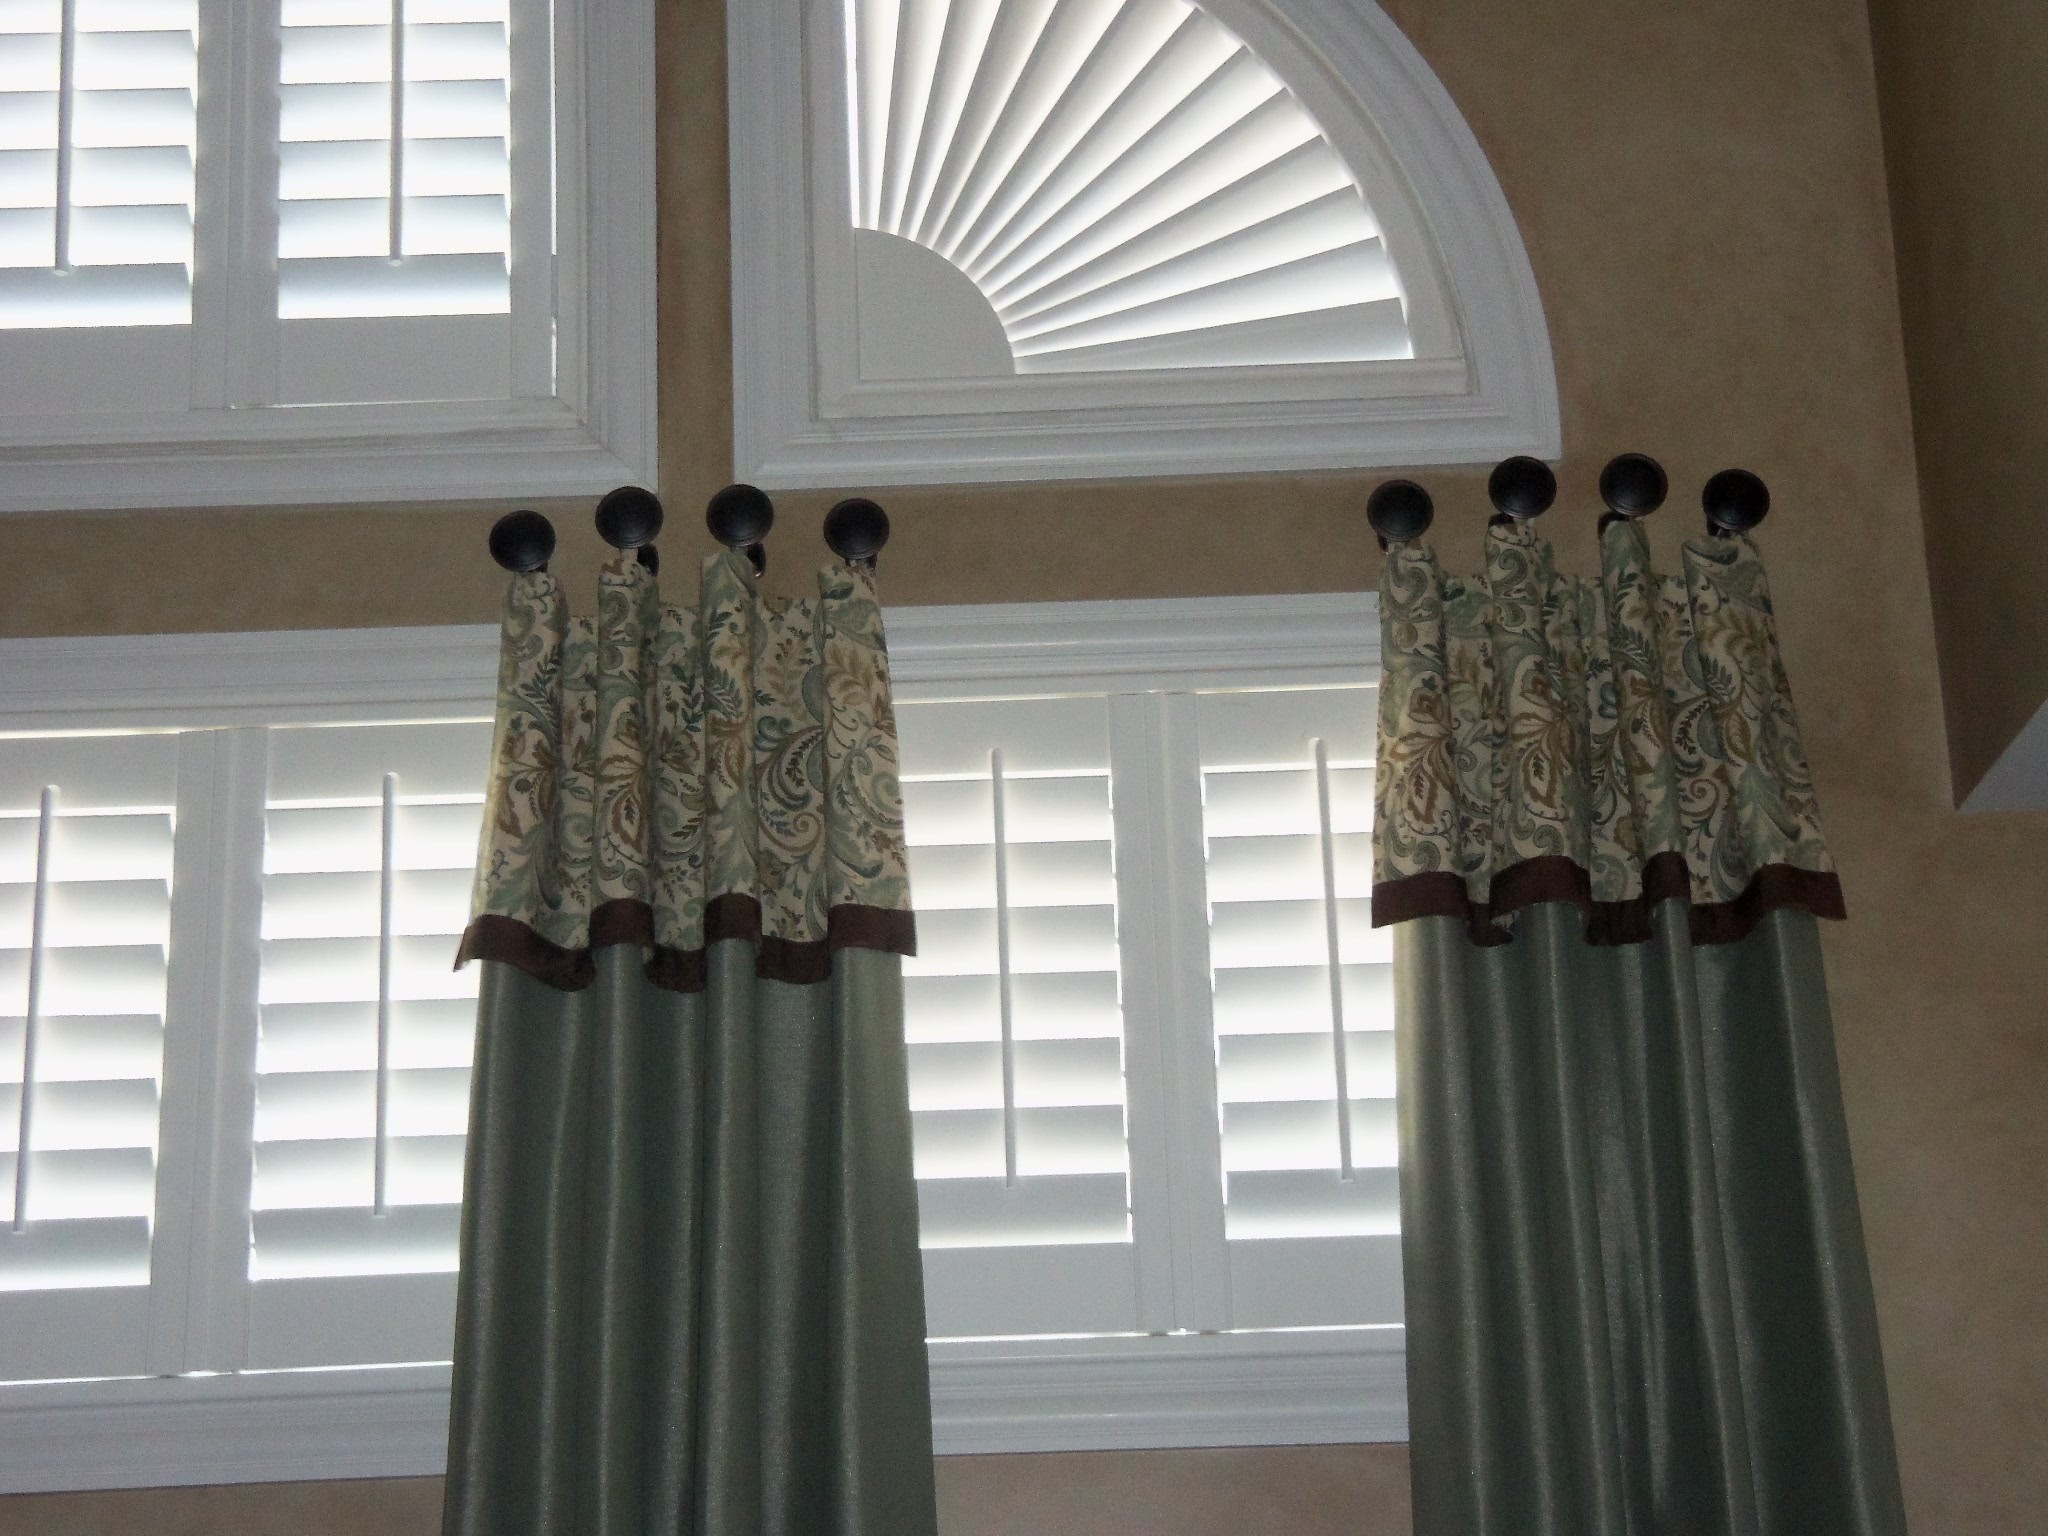 Terrific Curtain Panels Extended Length Panel Curtains Curtain Inside Extended Length Curtains (Image 15 of 15)